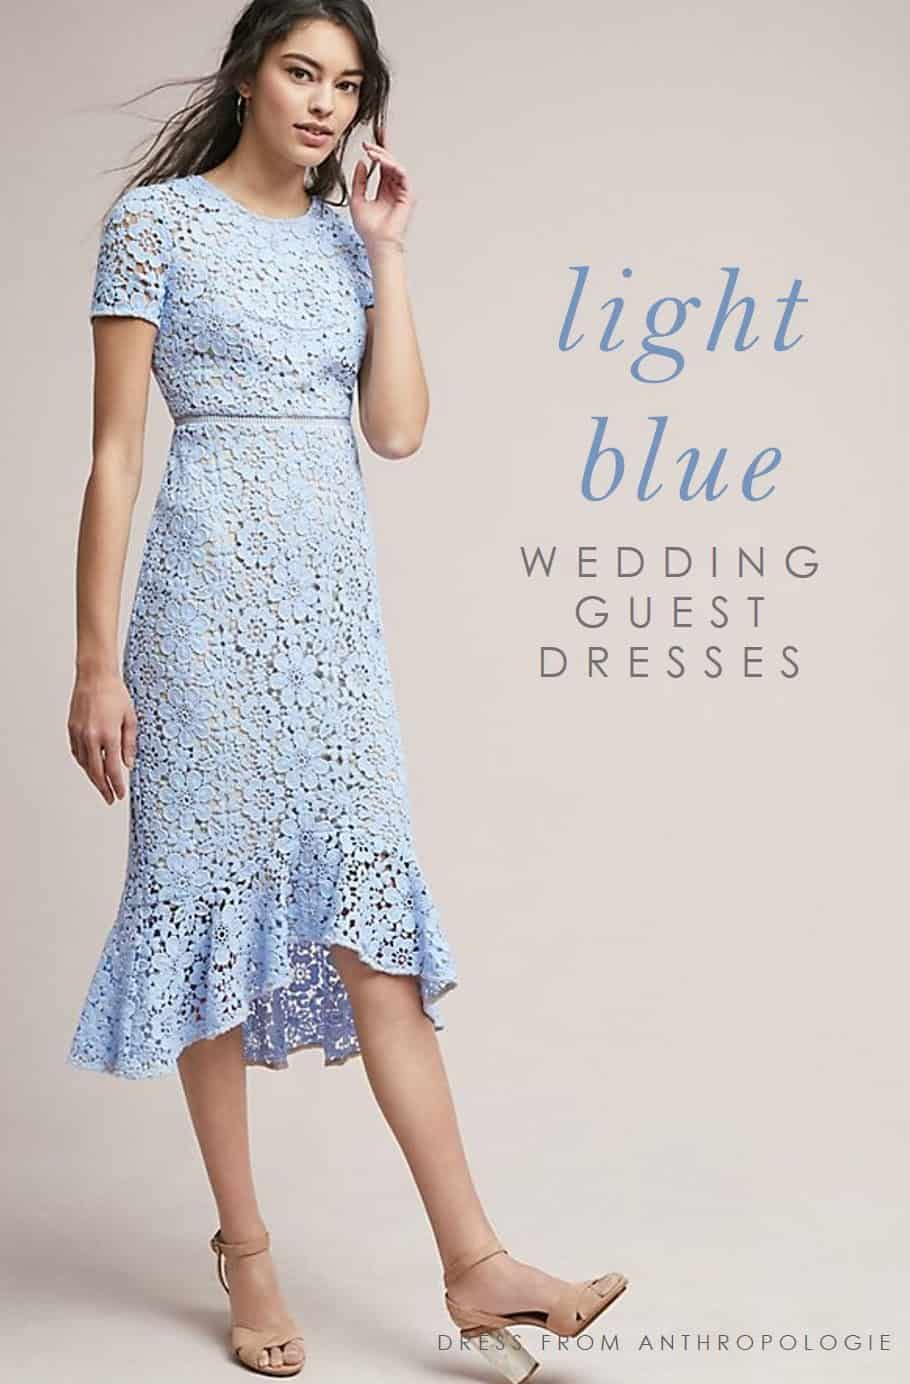 Cute Light Blue Dresses To Wear To Weddings Blue Wedding Guest Dresses Light Blue Wedding Dress Blue Wedding Dresses